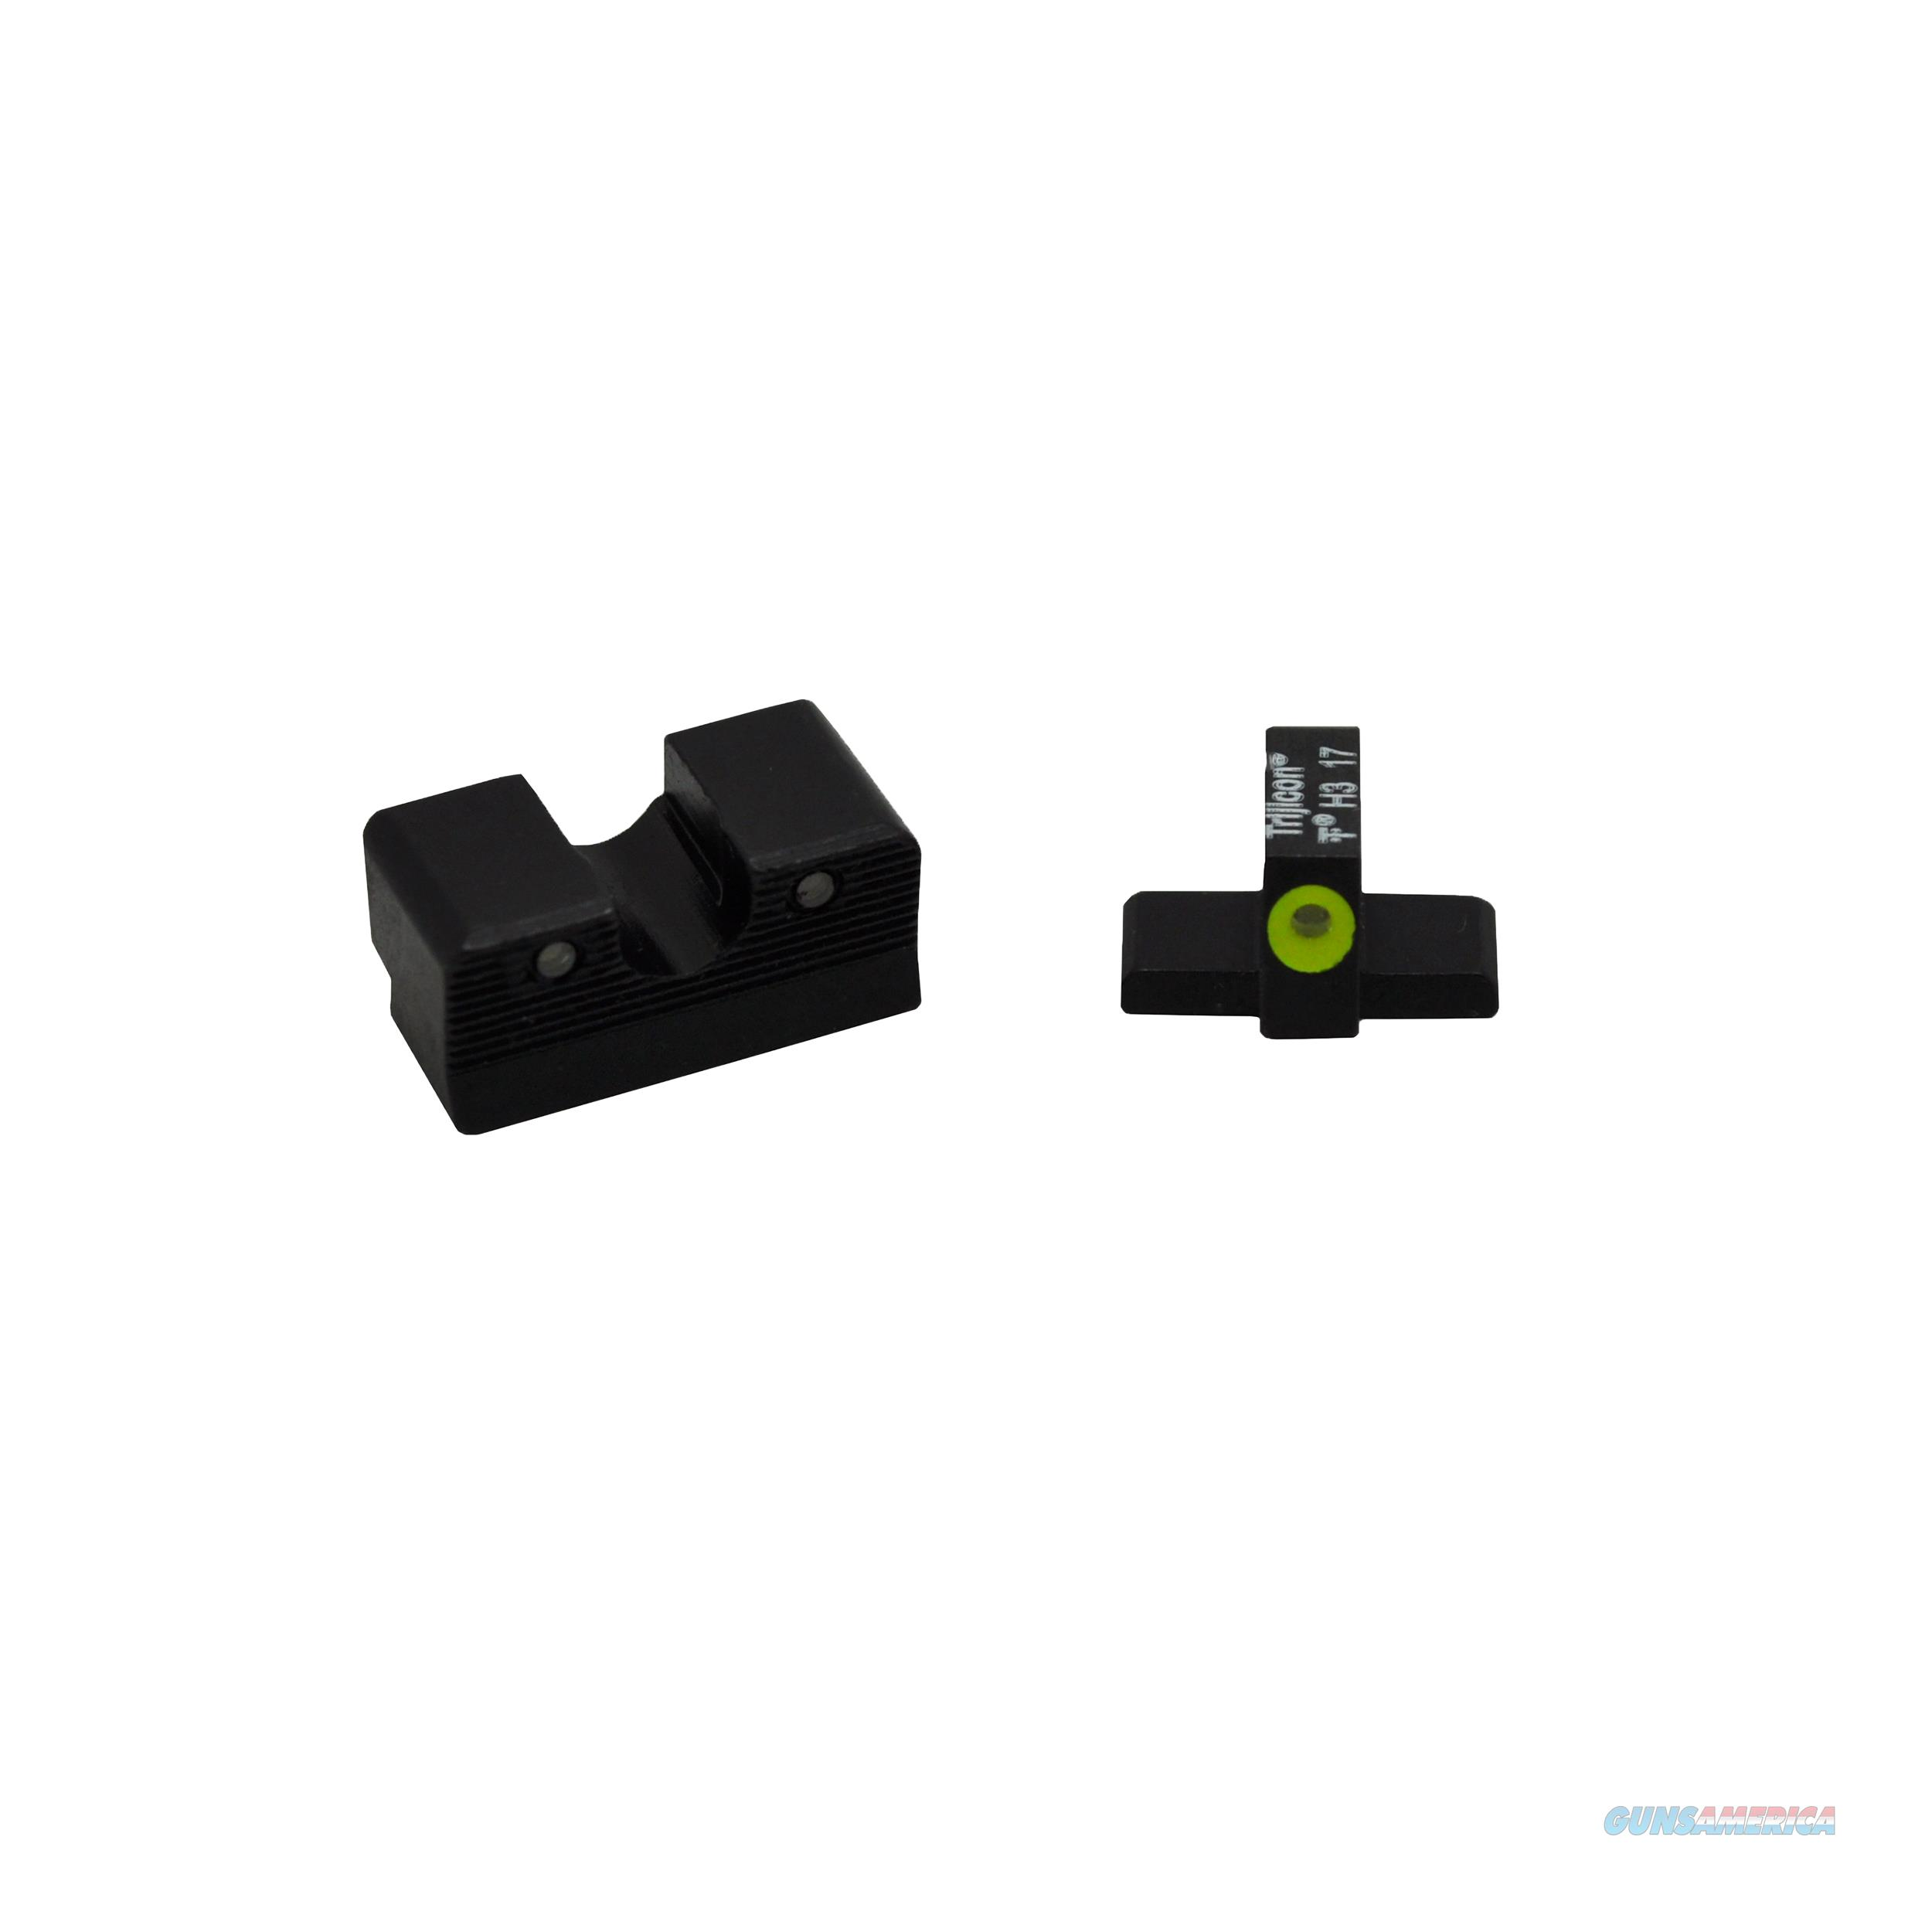 Trijicon Hd Xr Night Sight Set SG603-C-600860  Non-Guns > Iron/Metal/Peep Sights